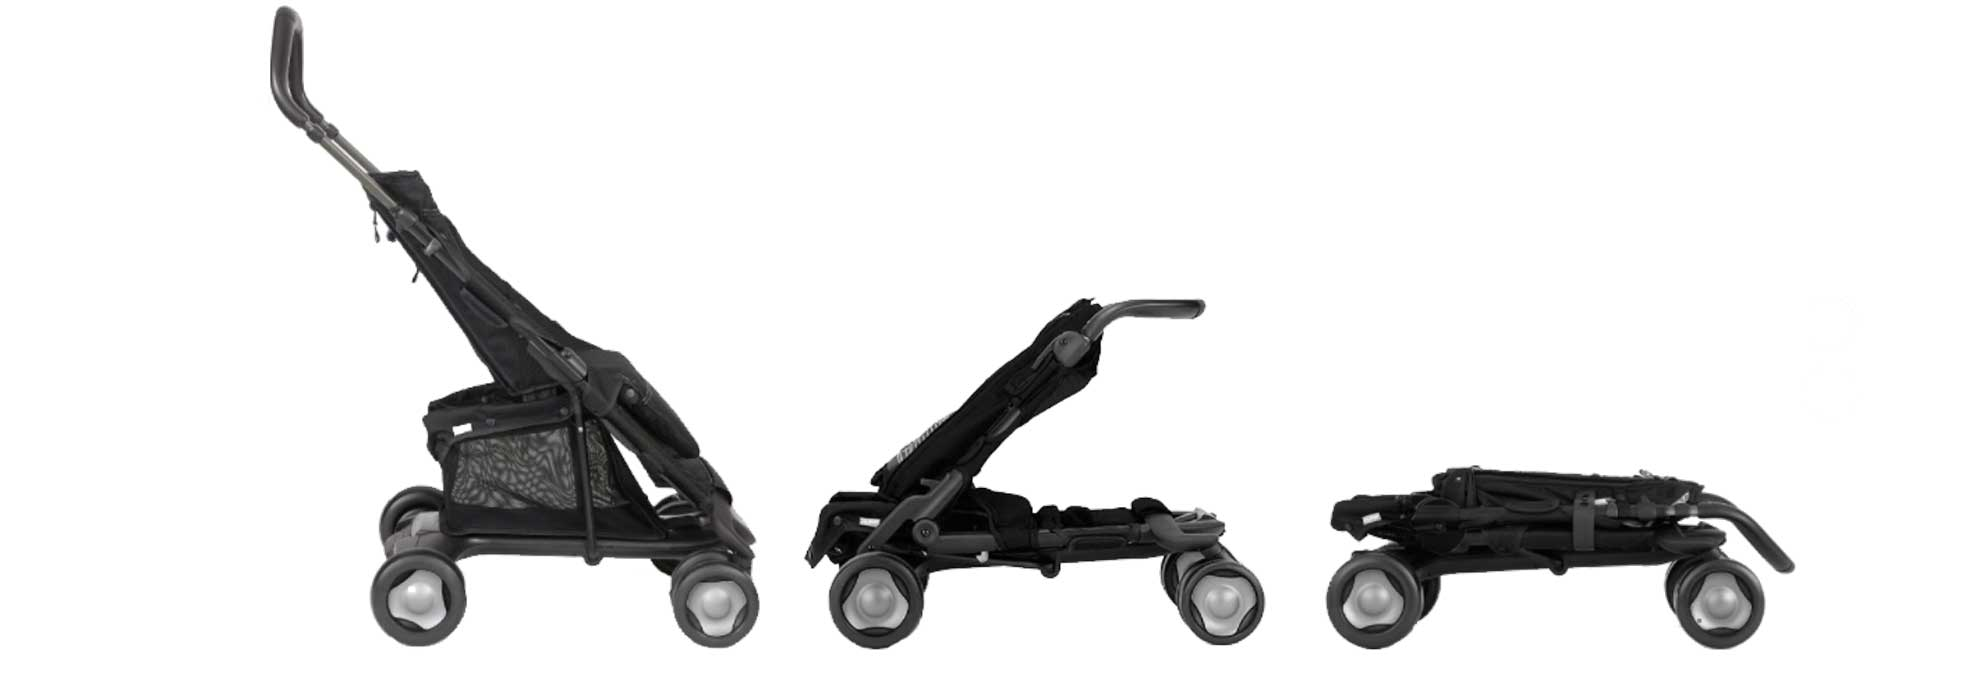 Compact Strollers That Make Traveling A Breeze Consumer